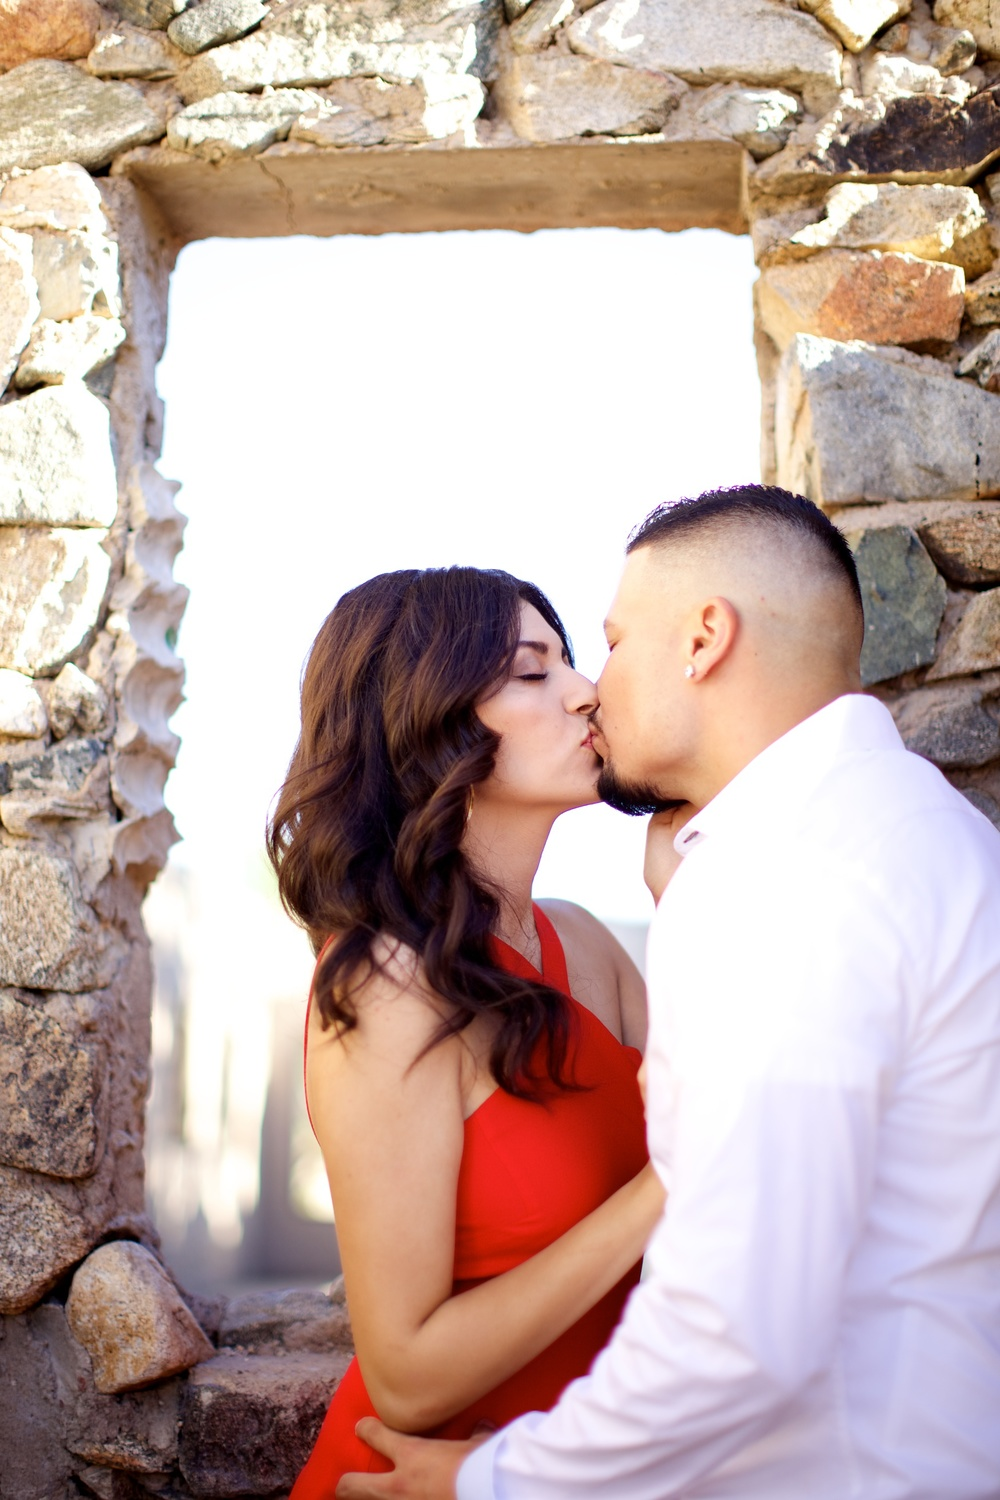 Stone window acts as a natural frame for couples portraits